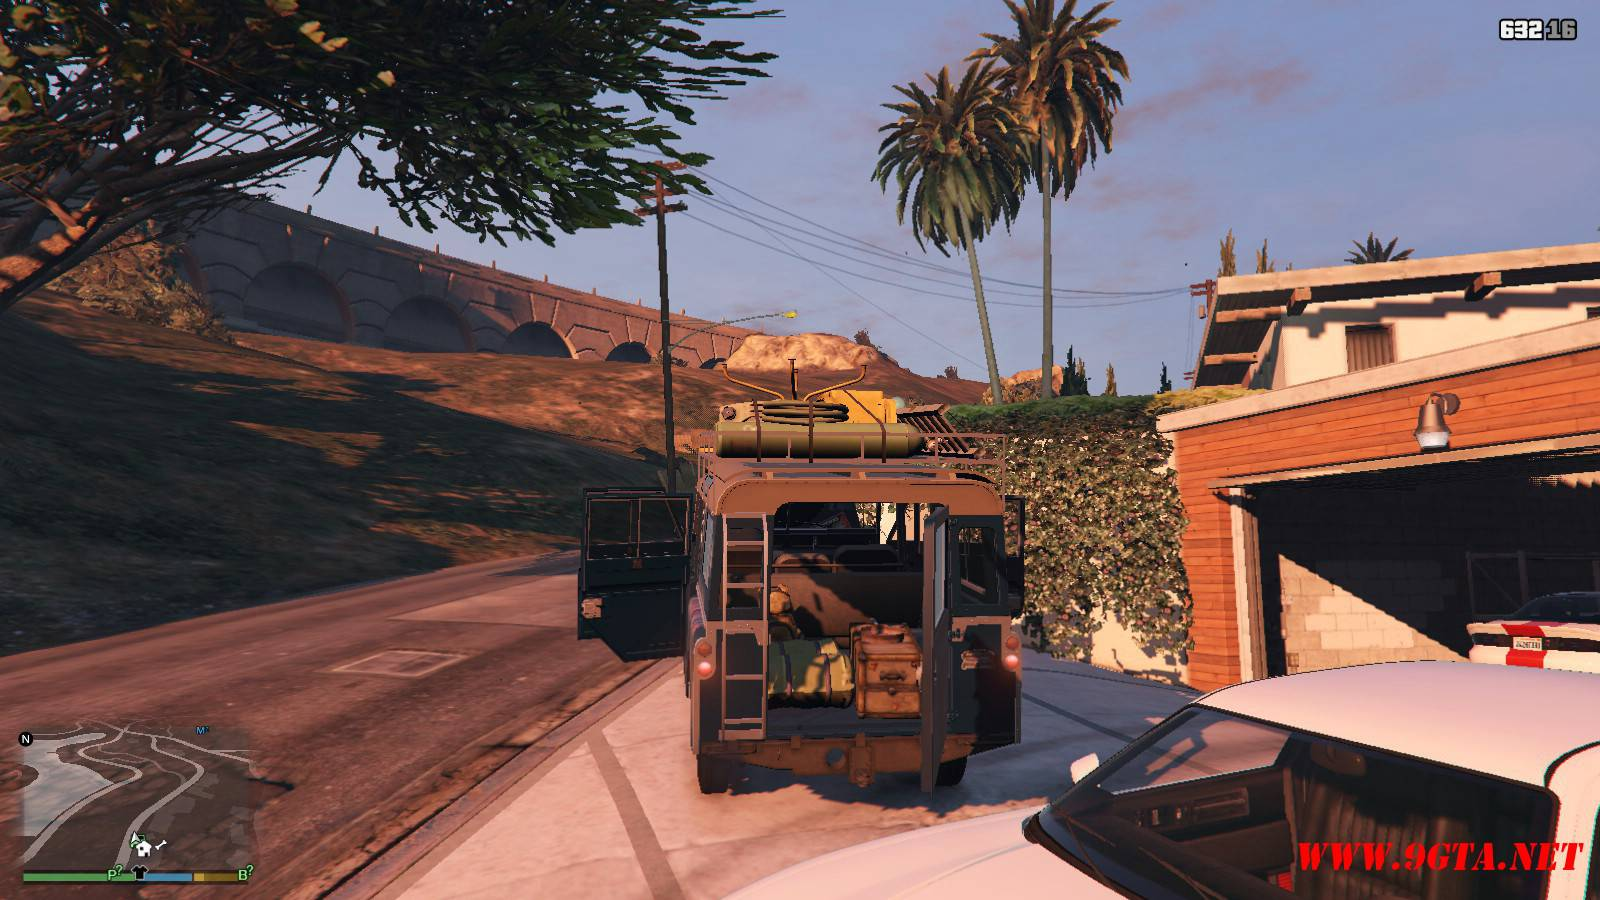 1971 Land Rover Series II Model 109A GTA5 Mods (13)